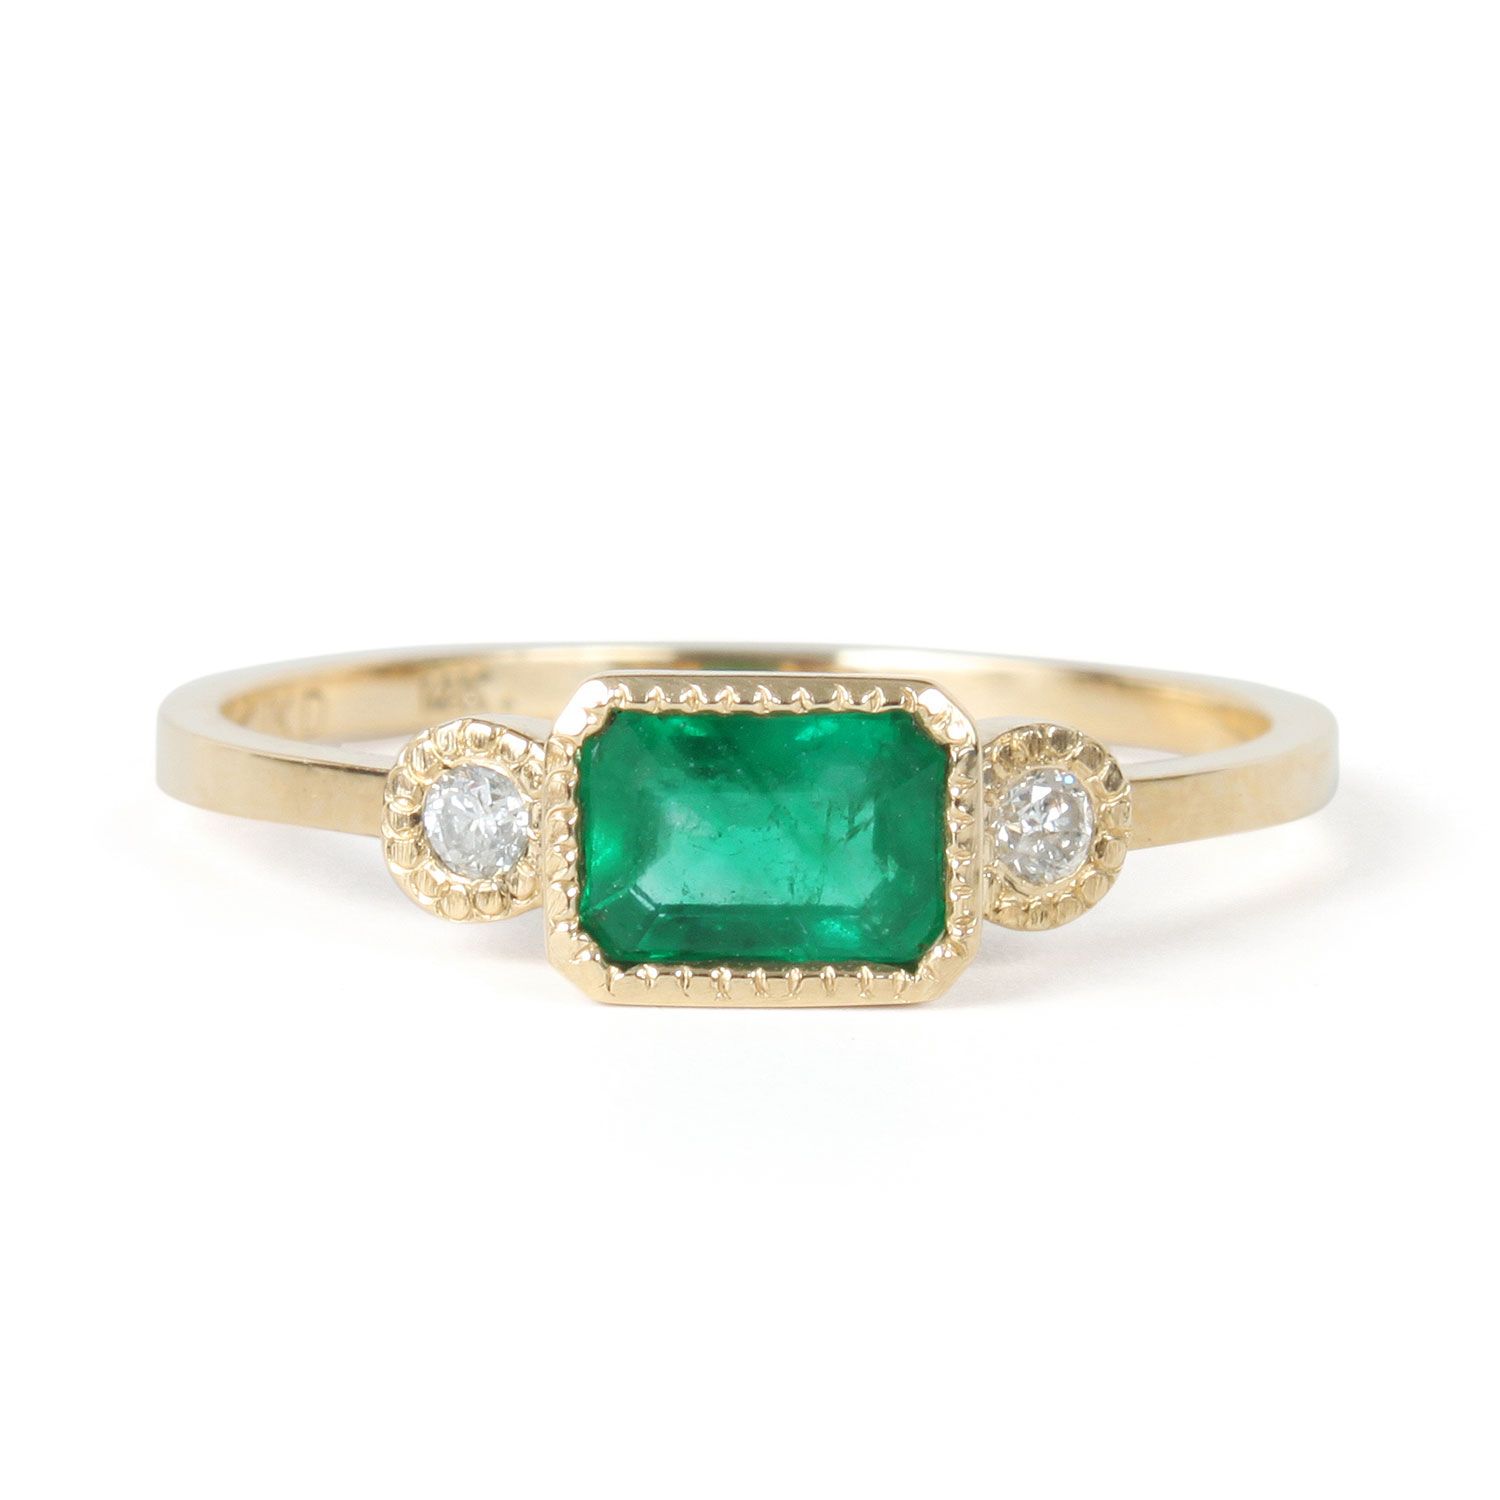 beryl diamond jewels s emerald r j enamel cocktail product mens green fullxfull gold il colombian ring